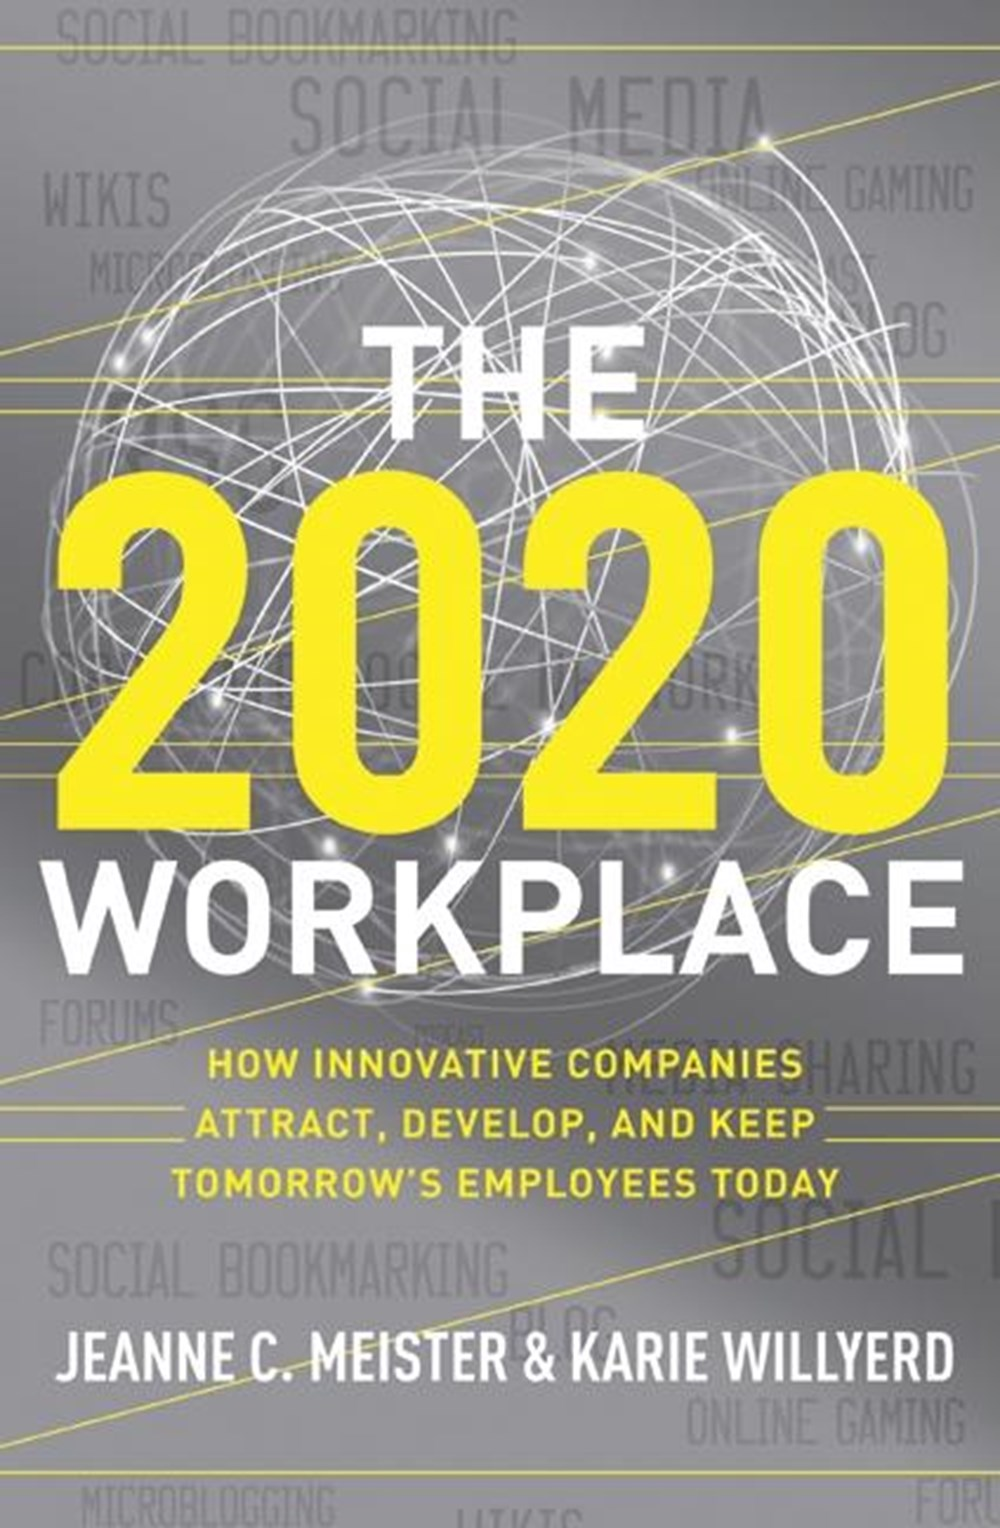 2020 Workplace How Innovative Companies Attract, Develop, and Keep Tomorrow's Employees Today